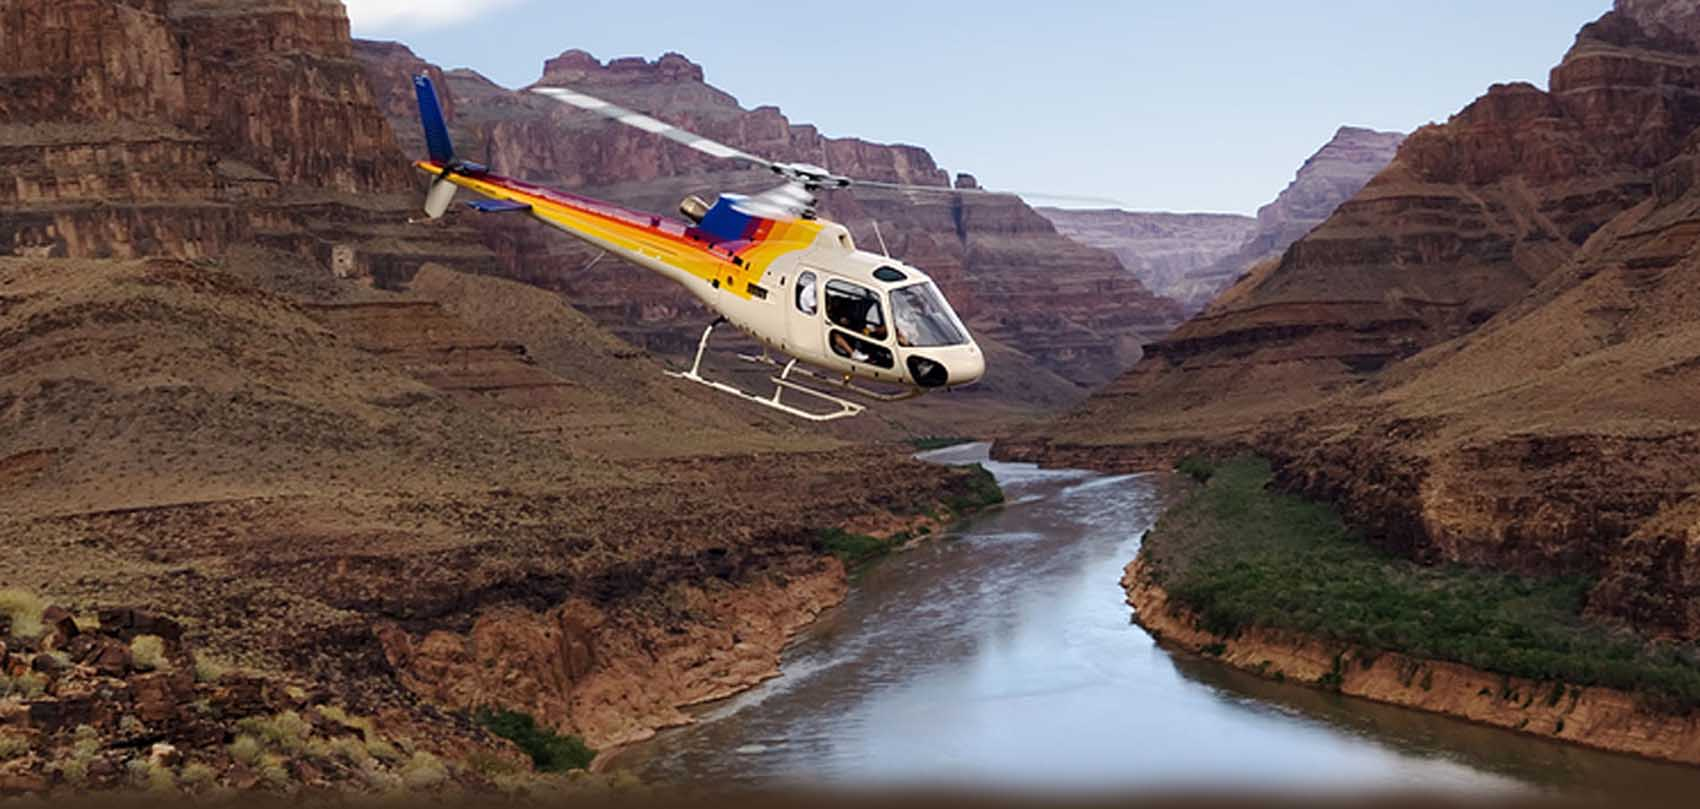 The easiest way to see Grand Canyon...